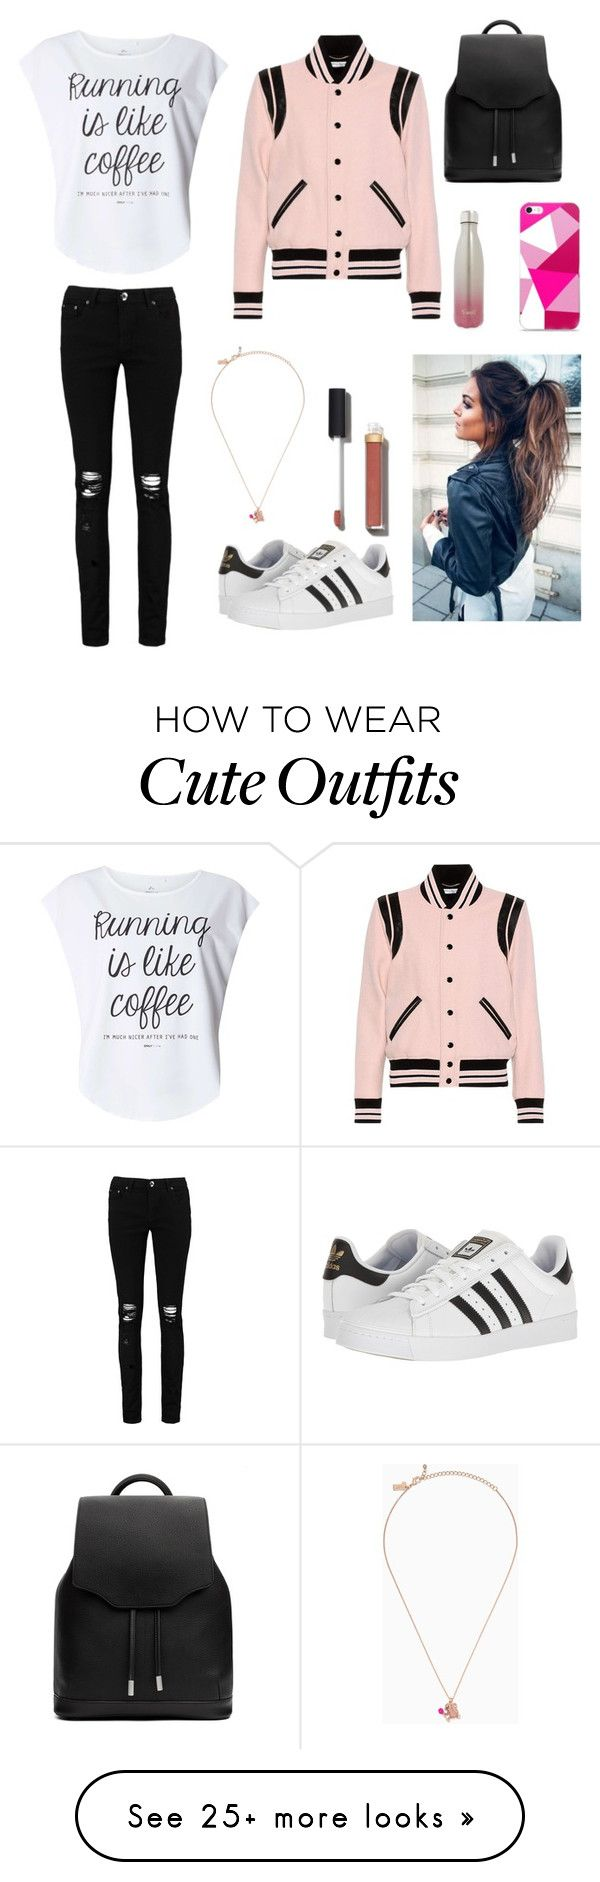 """""""liliyas back to school outfit"""" by emiliyberezhkova on Polyvore featuring Yves Saint Laurent, Dorothy Perkins, Boohoo, adidas, rag & bone, Chanel, Kate Spade and S'well"""